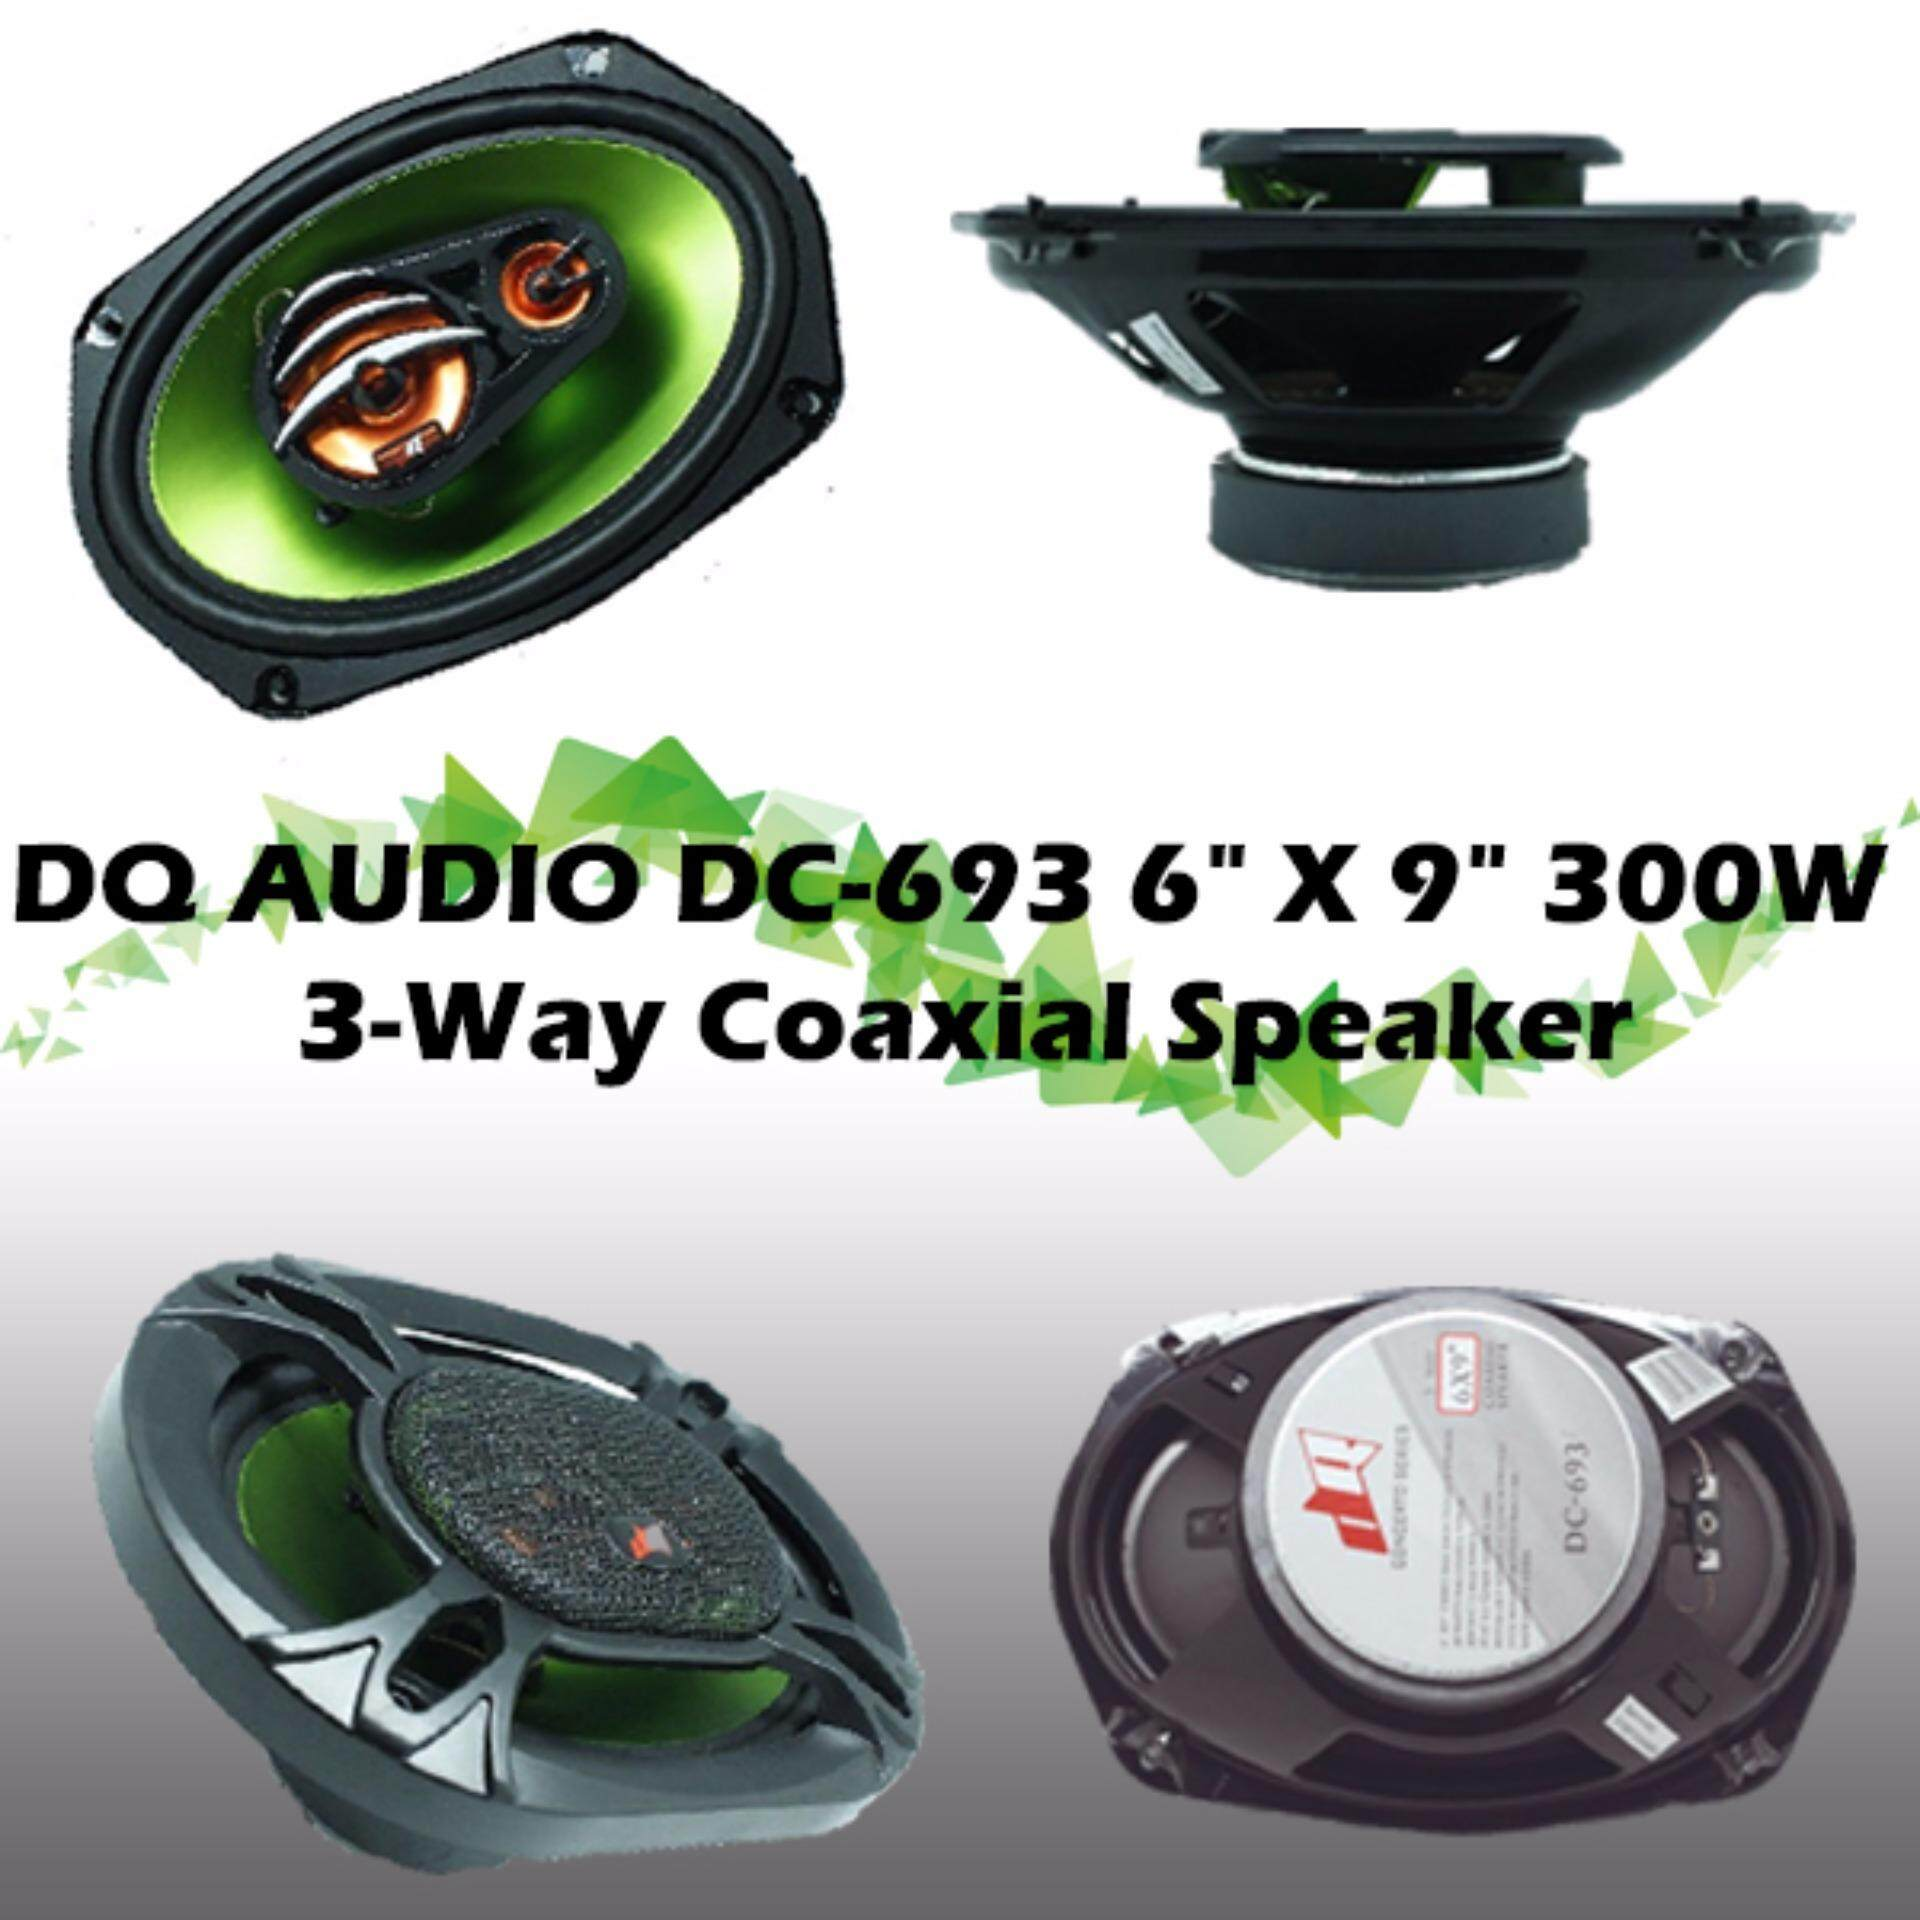 DQ Audio DC-693 3-Way Coaxial Speaker -Made in USA